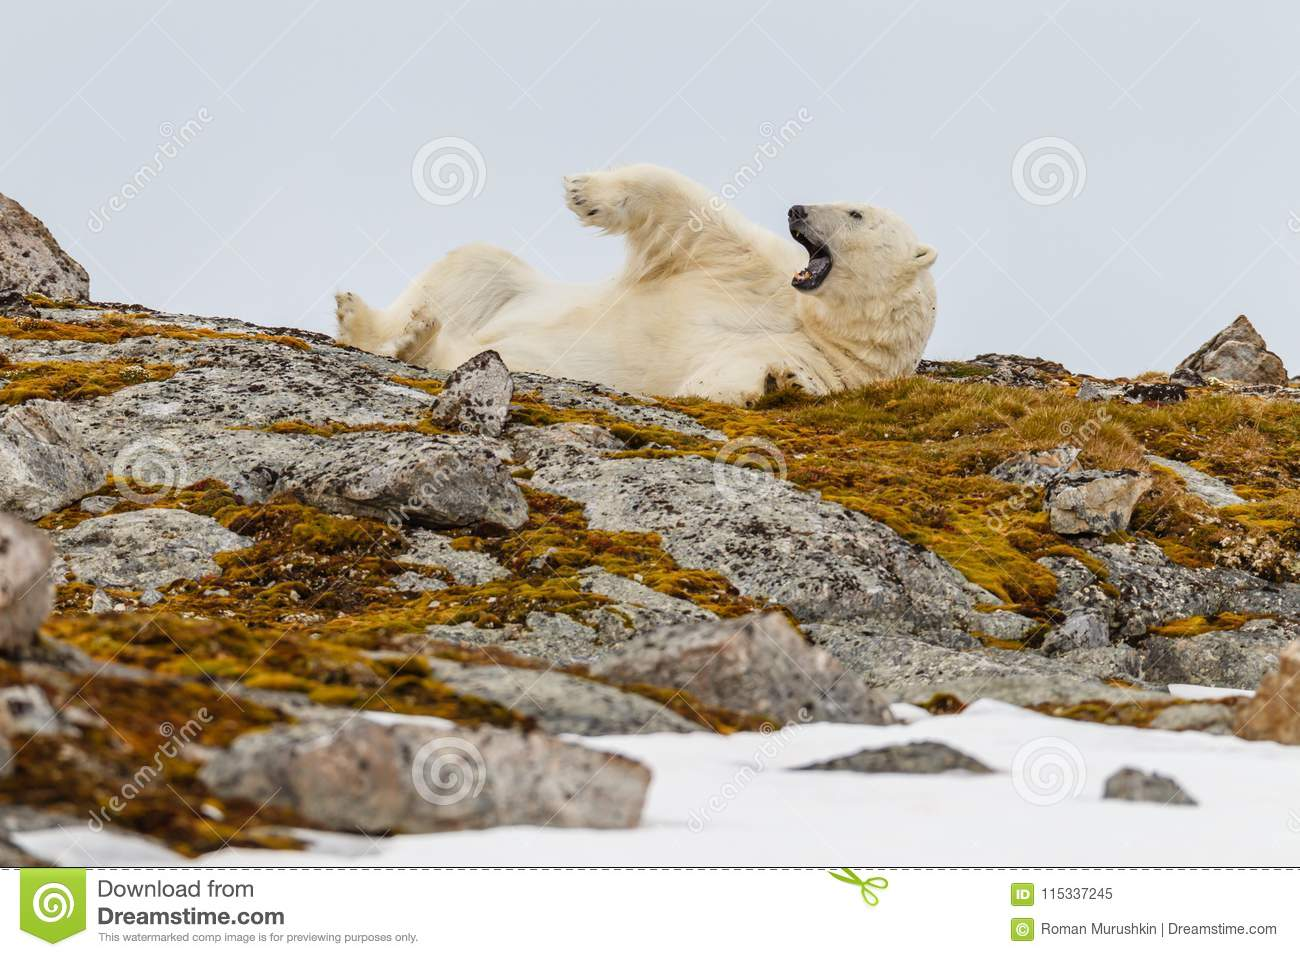 A polar bear lies on its back on a snowy stony hill overgrown with mosses and yawns